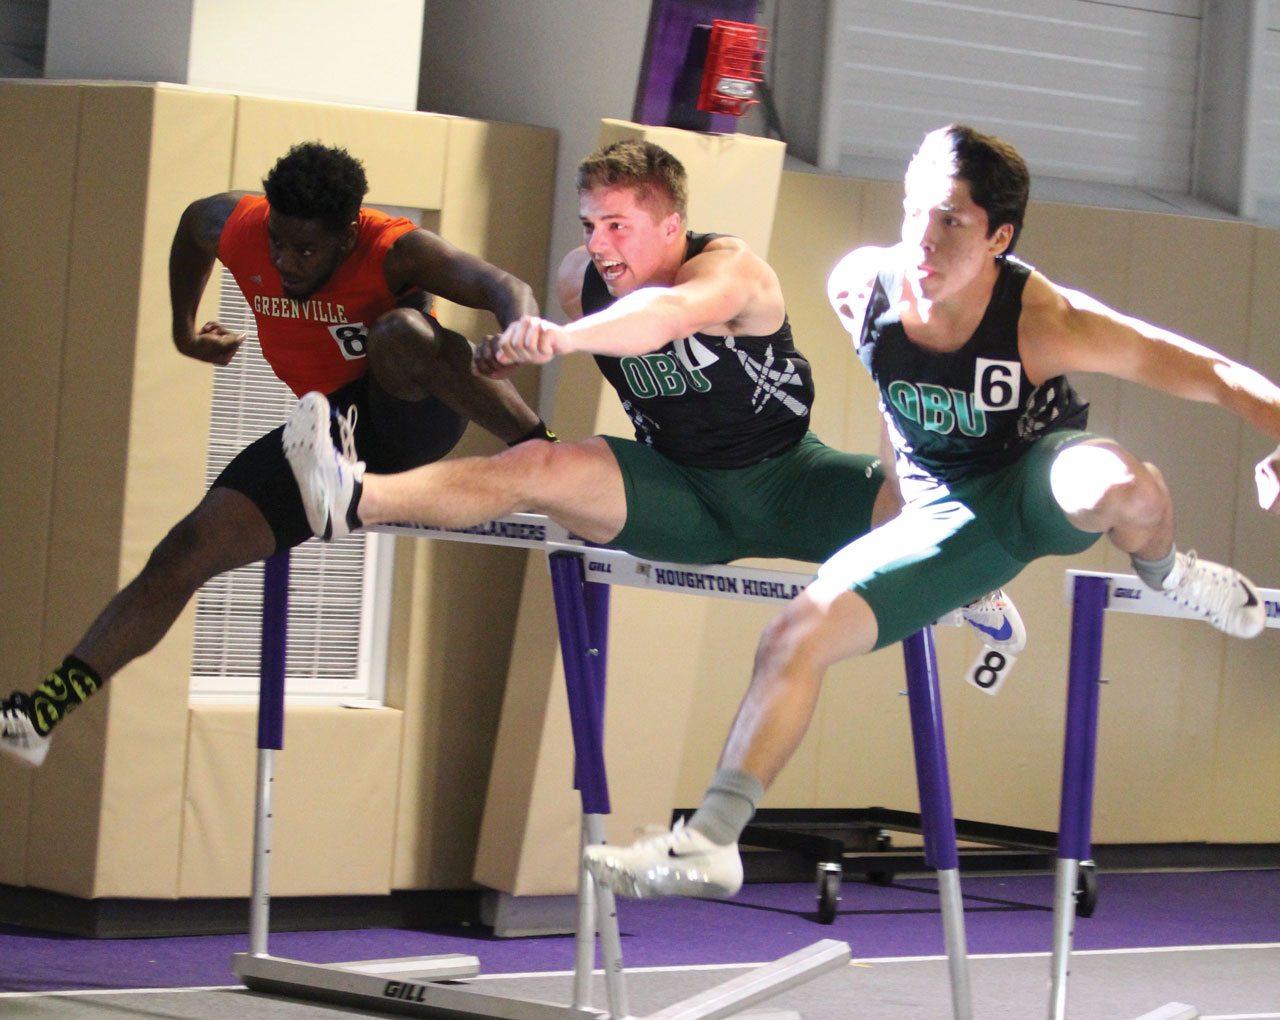 OBU trackster helps others clear hurdles